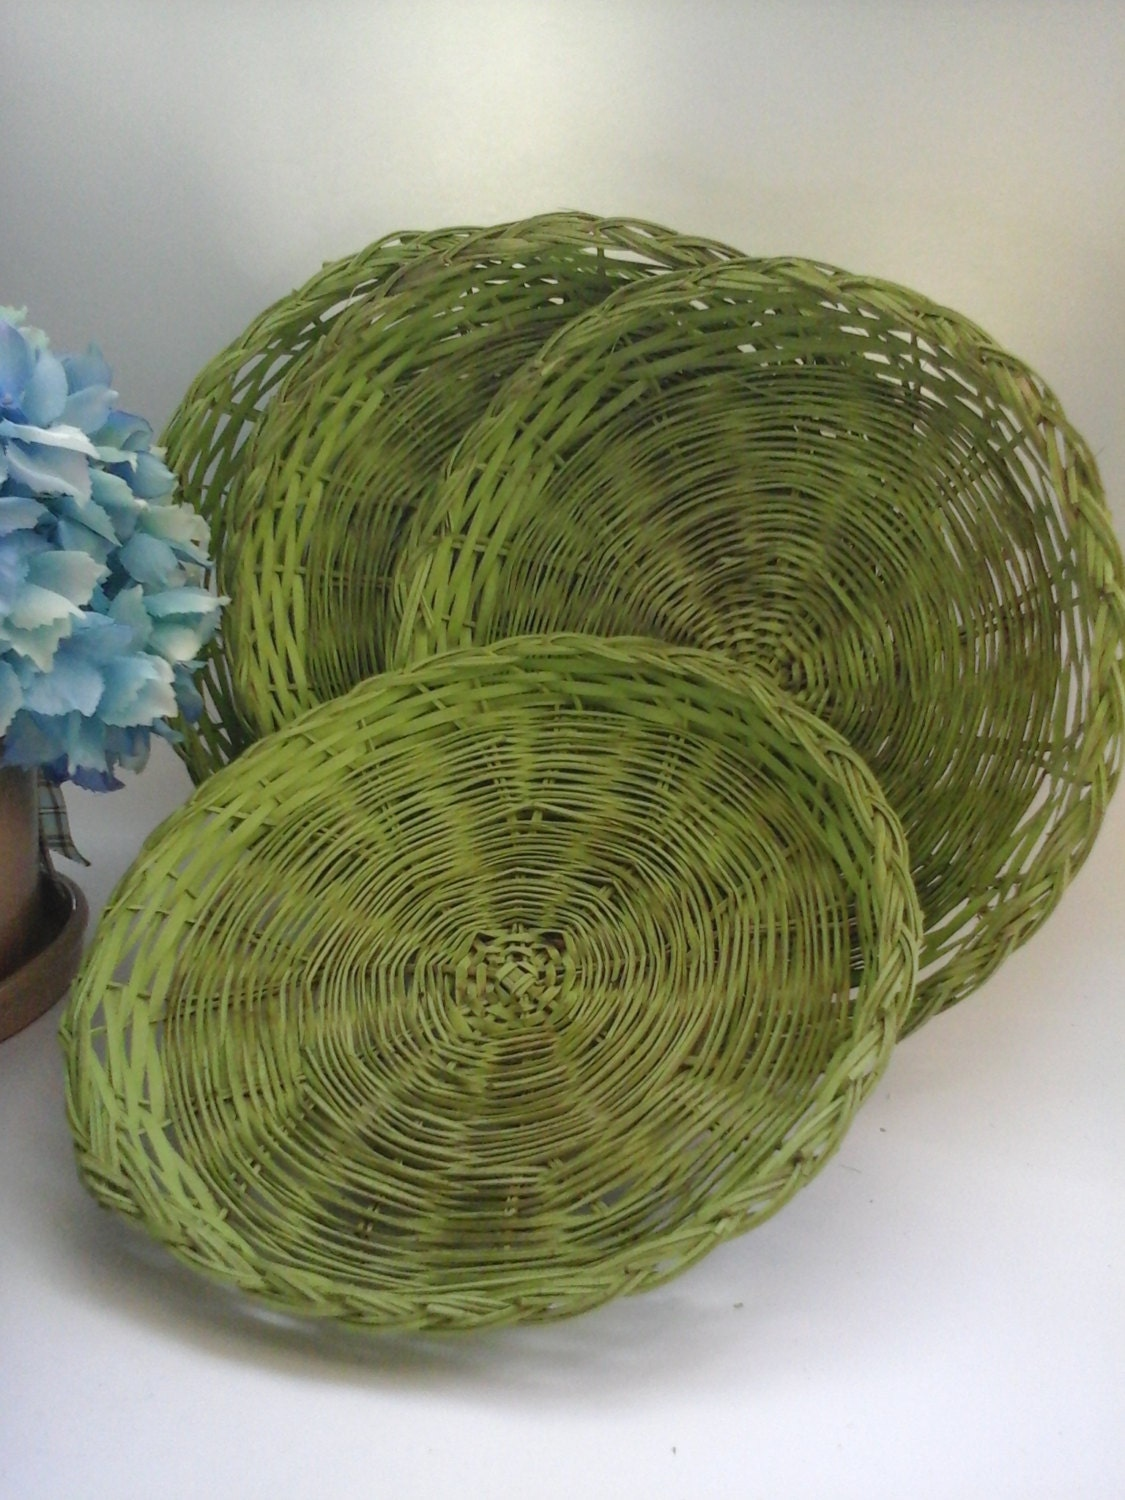 four green dyed wicker paper plate holders rattan straw. Black Bedroom Furniture Sets. Home Design Ideas